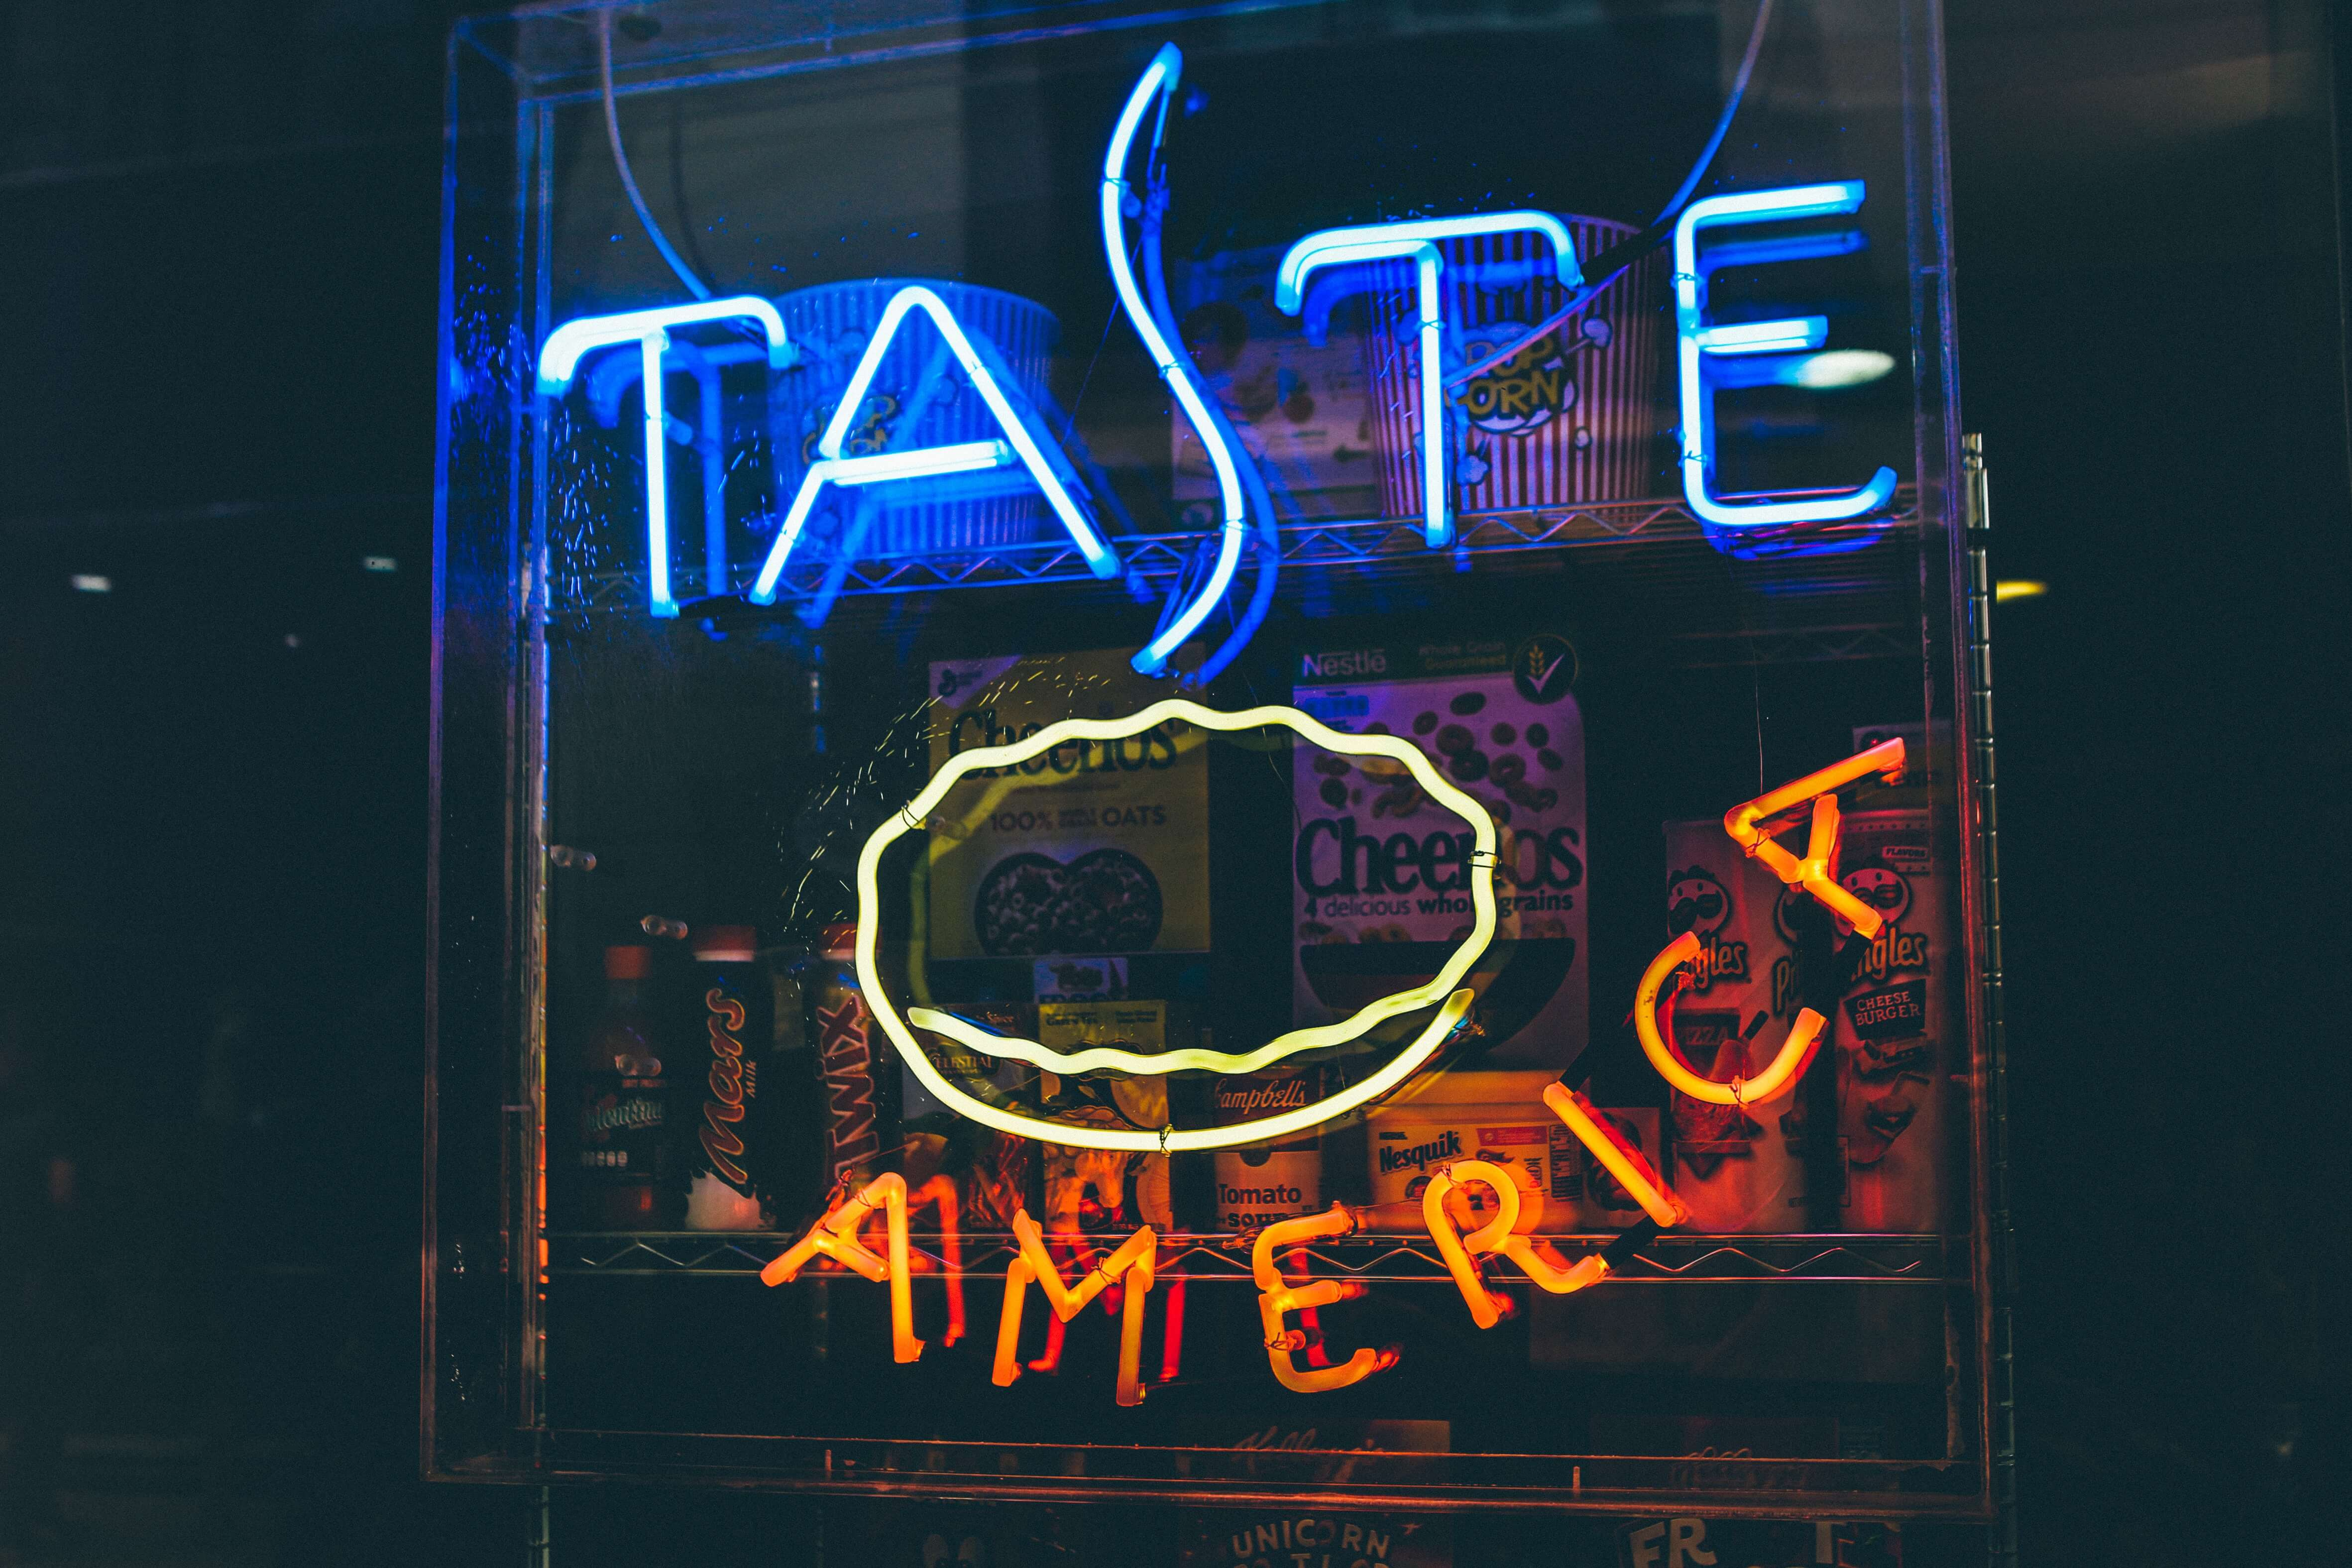 storefront frequented by american expats in spain